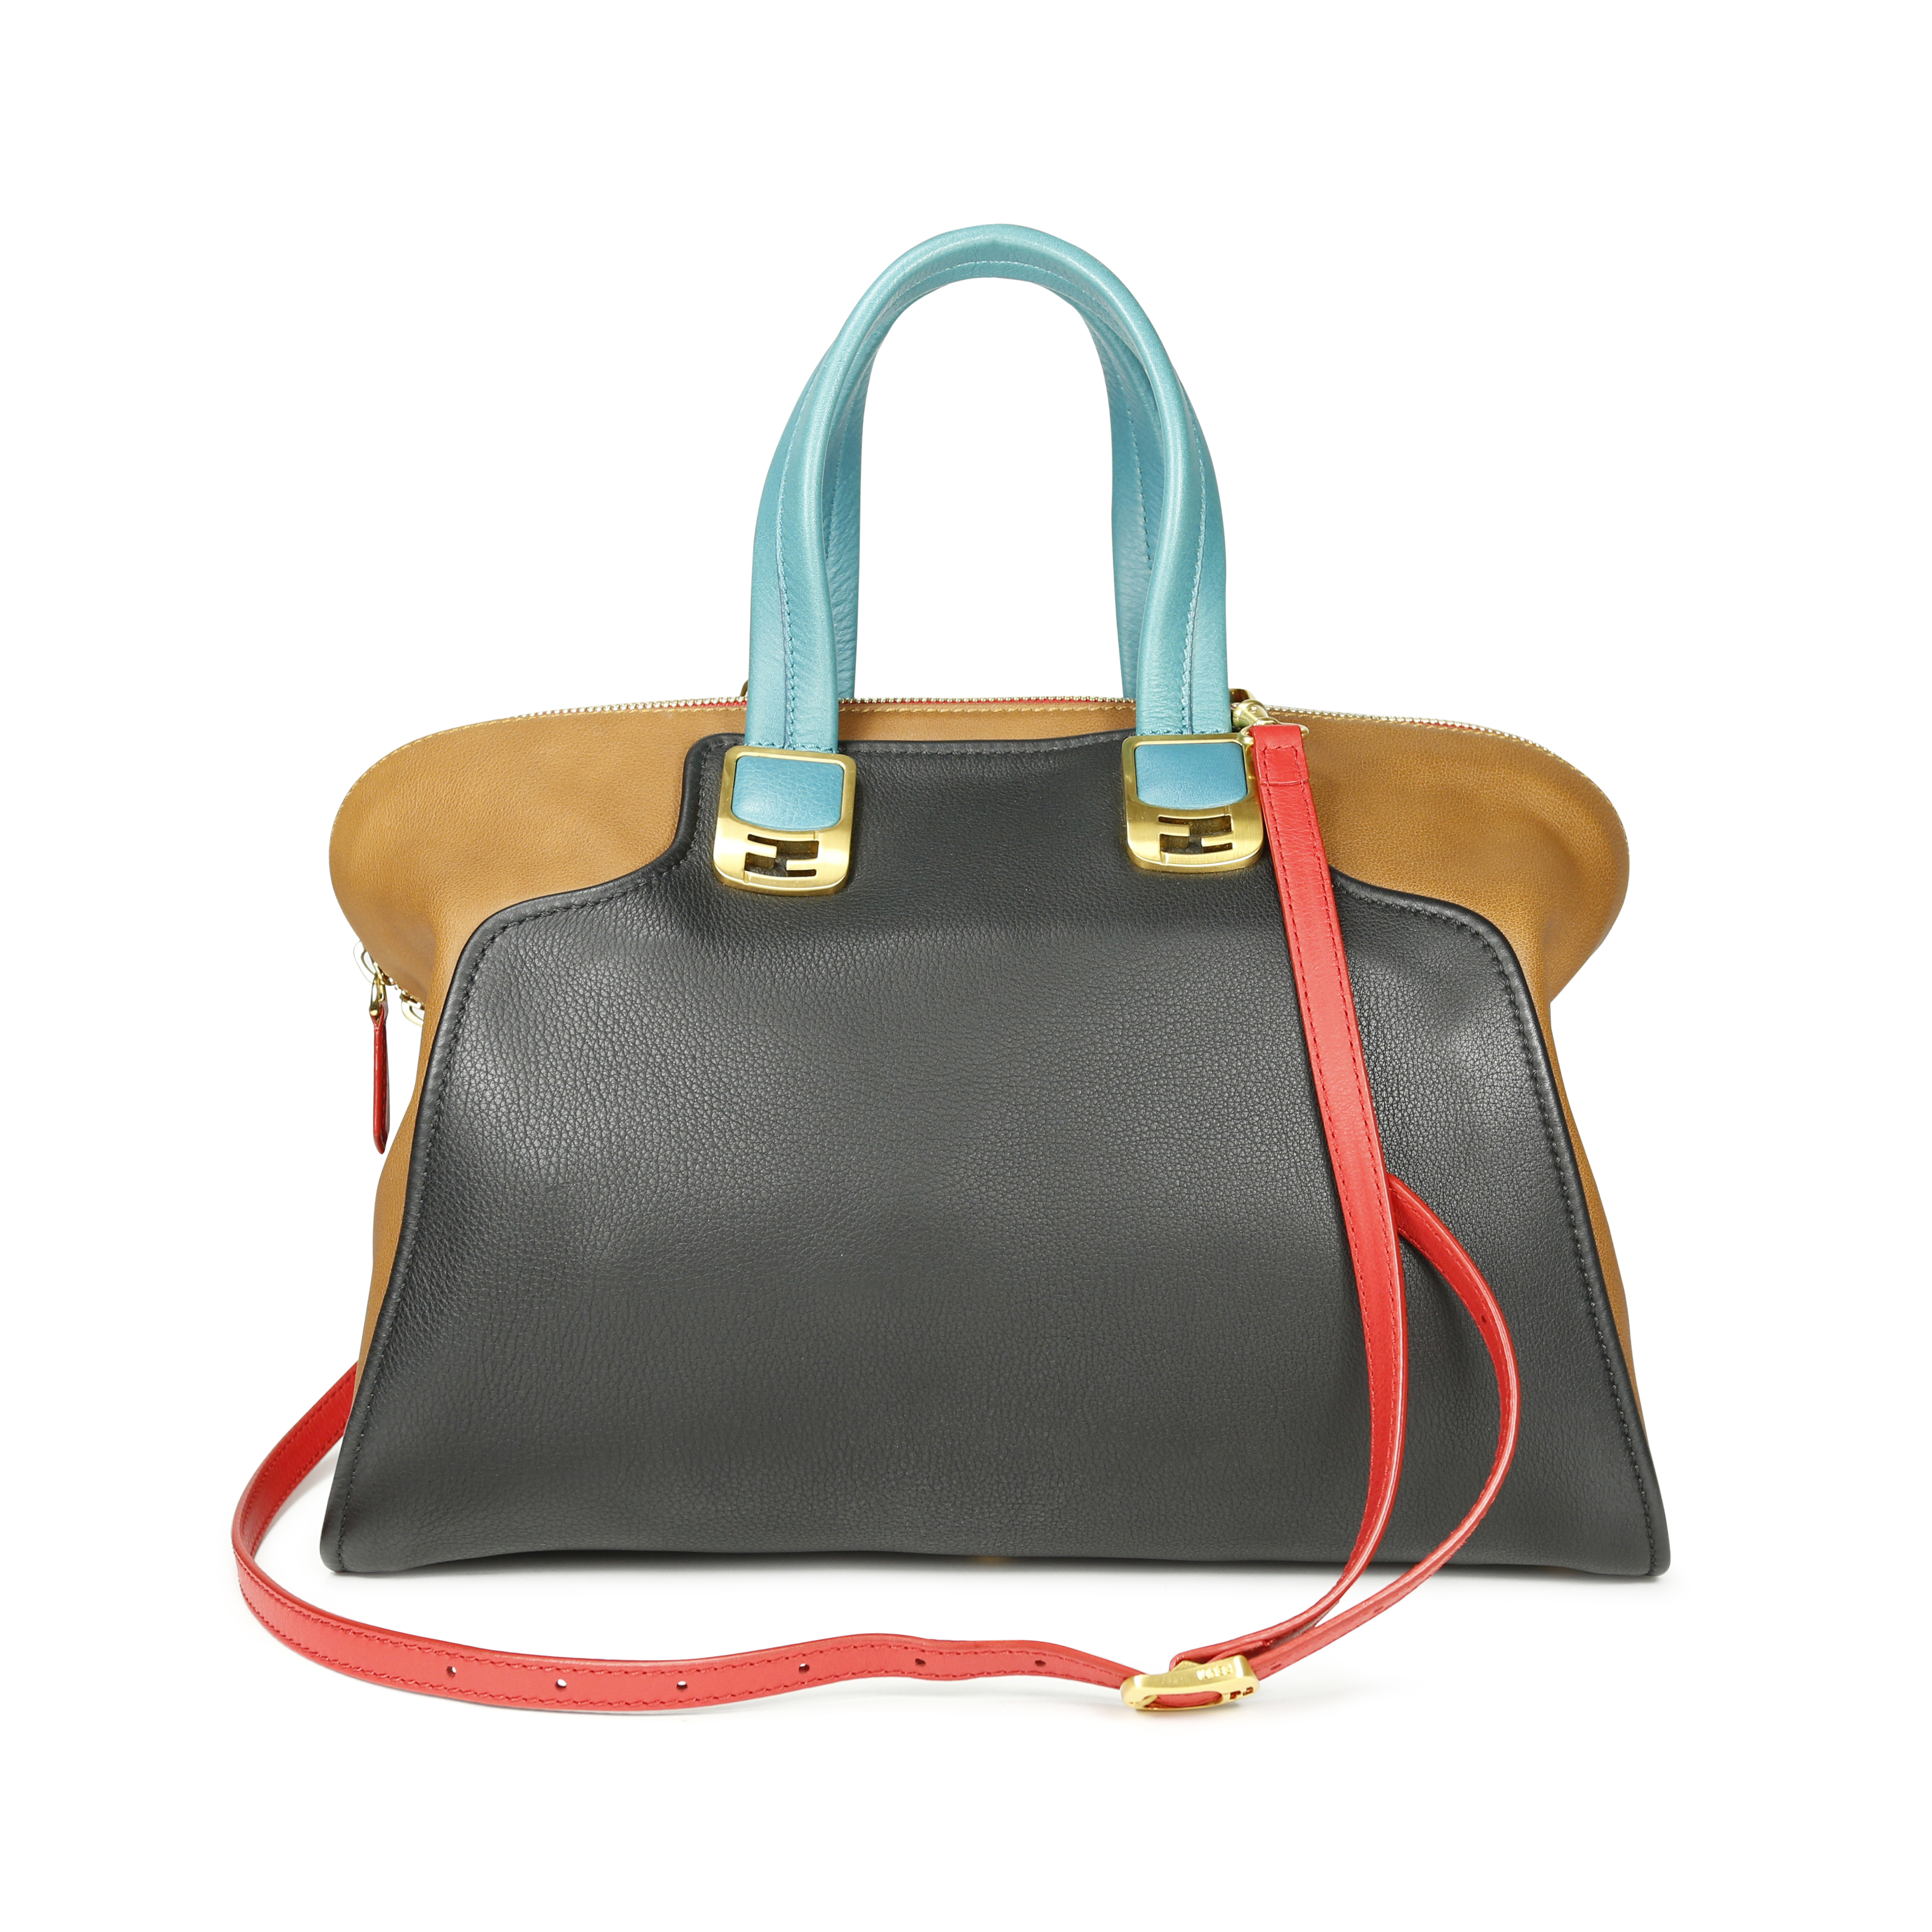 Authentic Pre Owned Fendi Large Chameleon Bag Pss 145 00067 The Fifth Collection